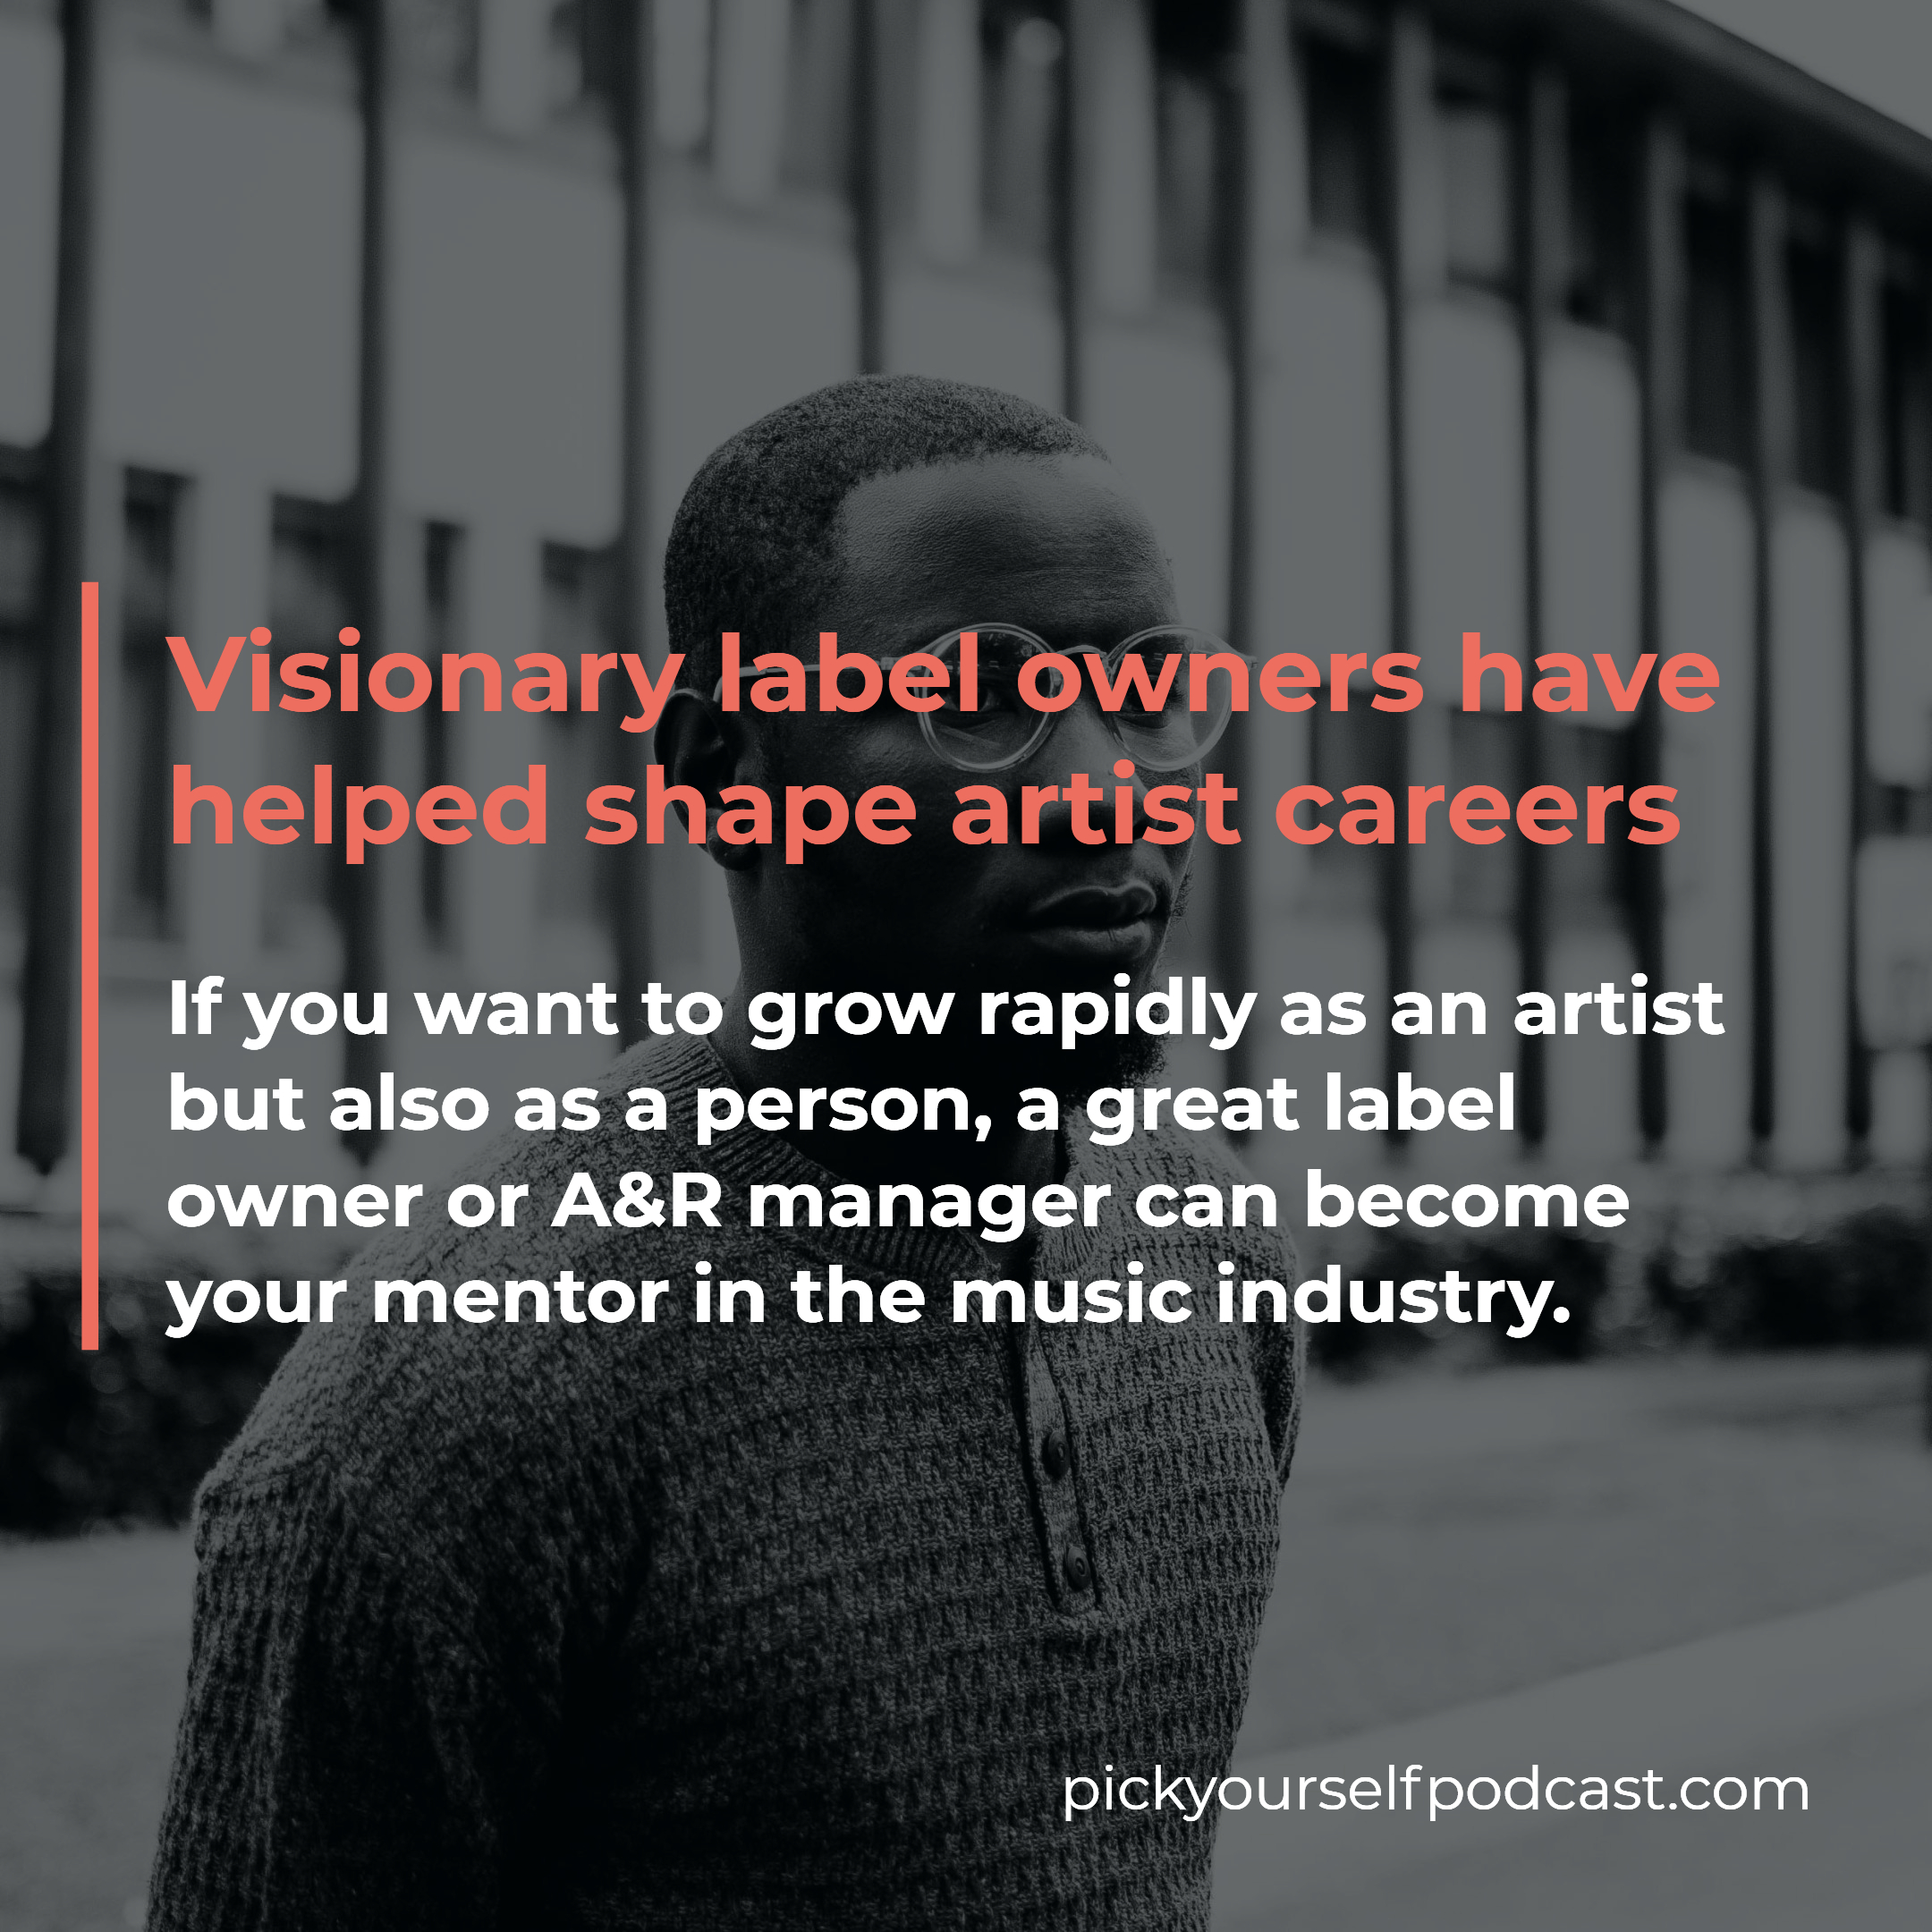 Visionary label owners have helped shape artist careers. This is another reason why record labels are still important.